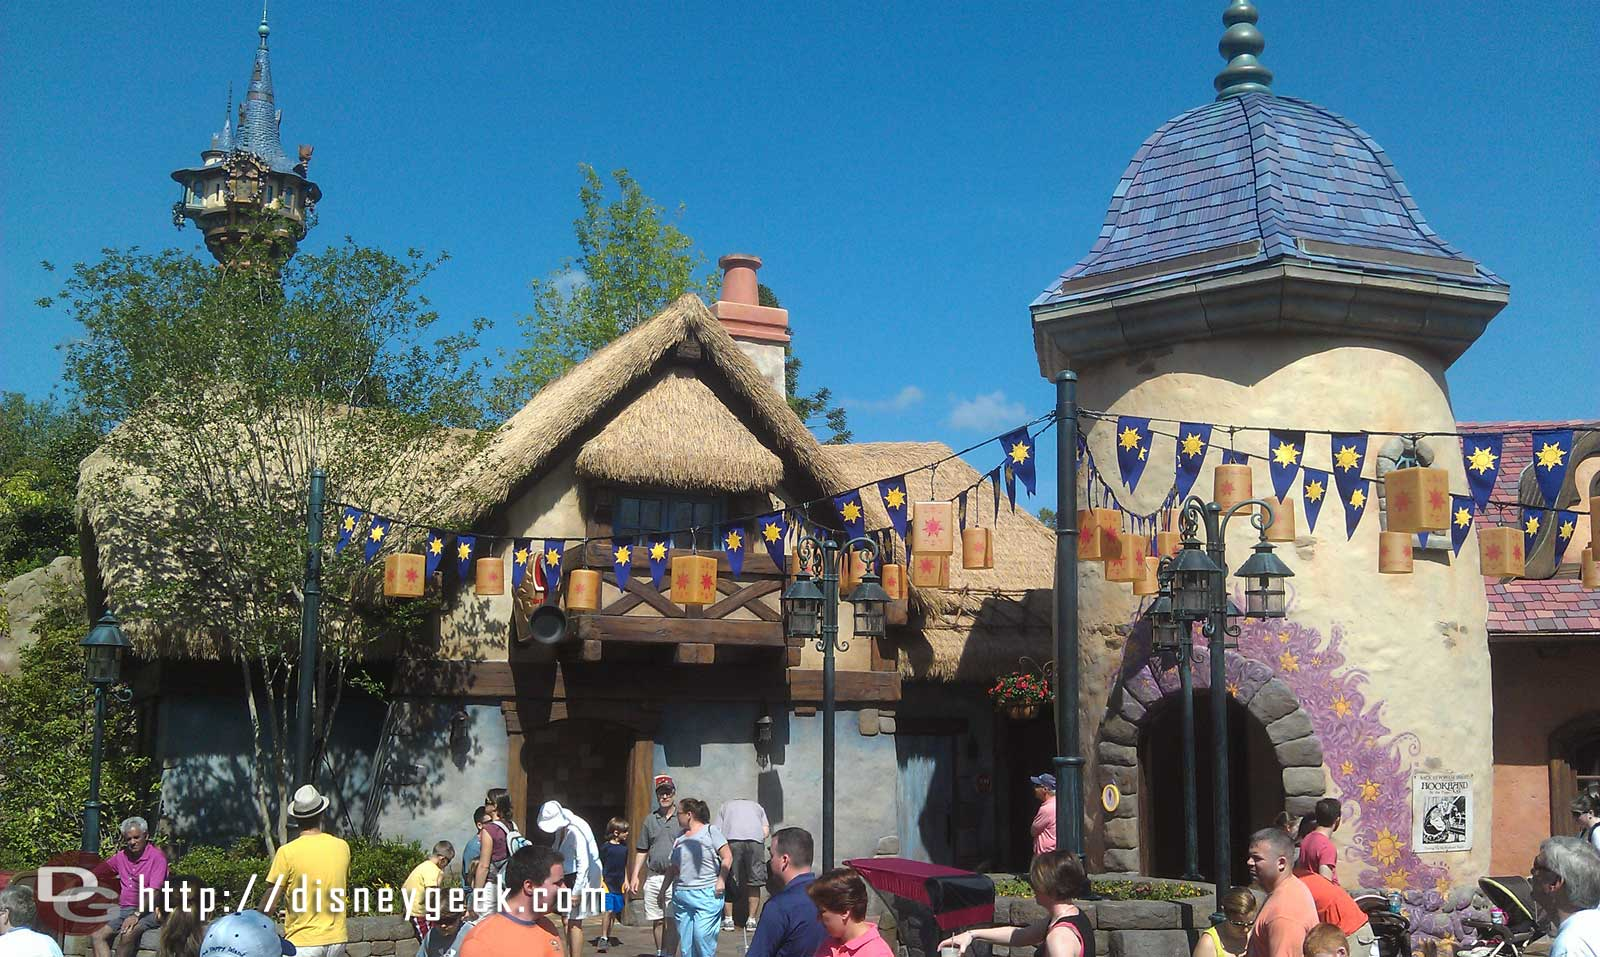 The famous new Tangled Restrooms in Fantasyland.